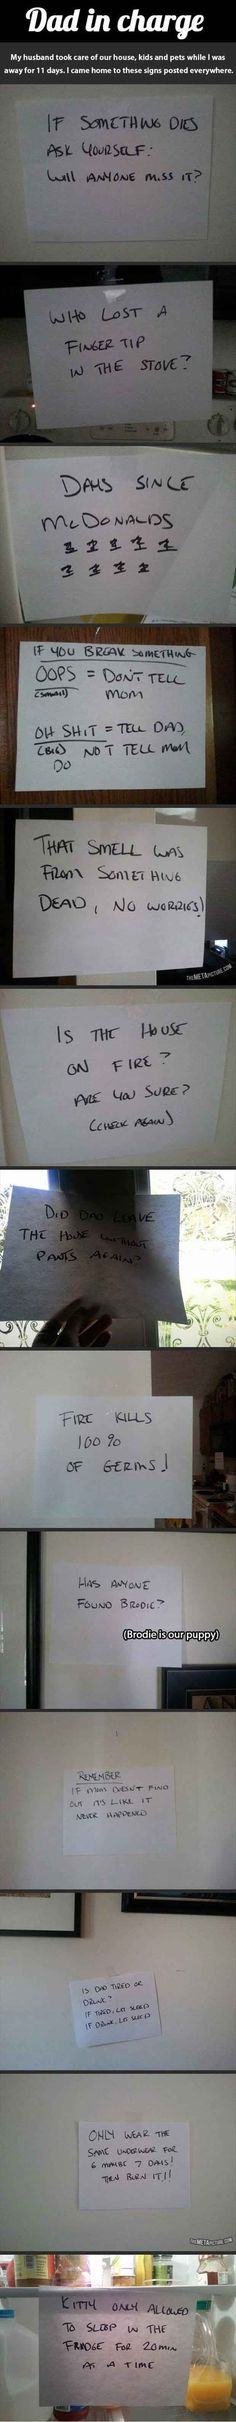 Dad's In Charge, What Could Possibly Go Wrong? - 13 Pics